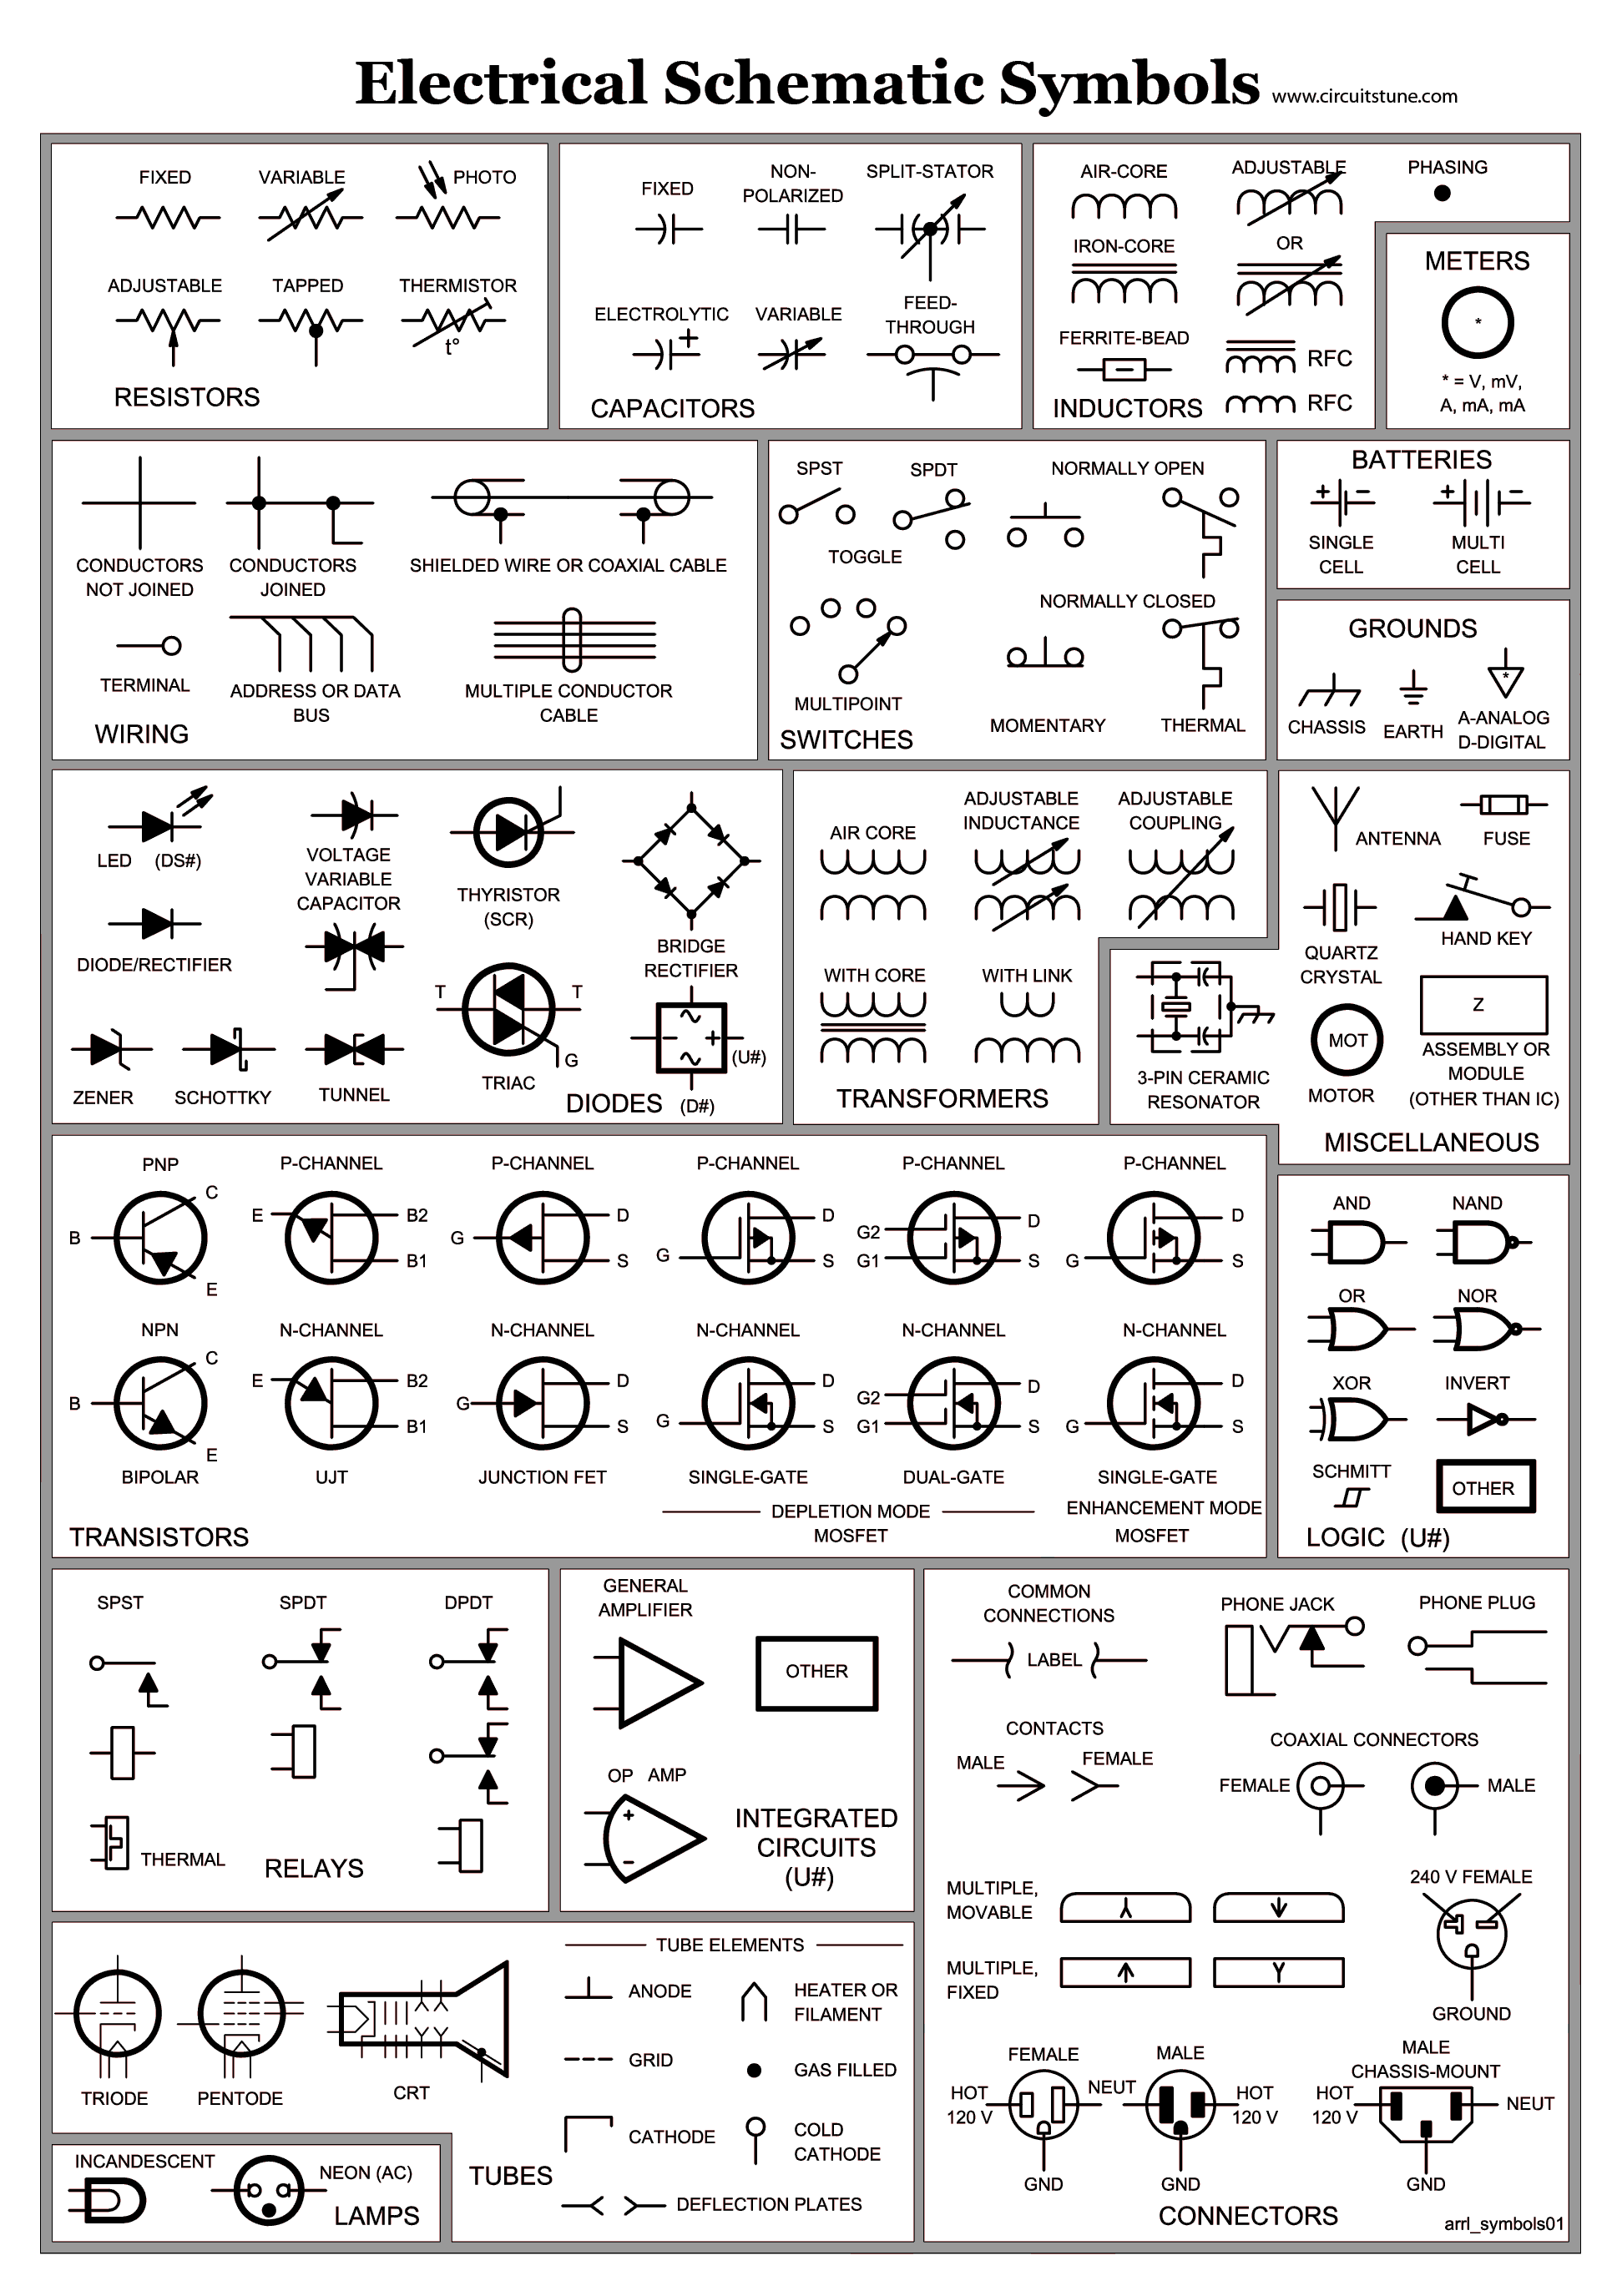 Electrical Wiring Diagrams Symbols : Electrical schematic symbols wire diagram